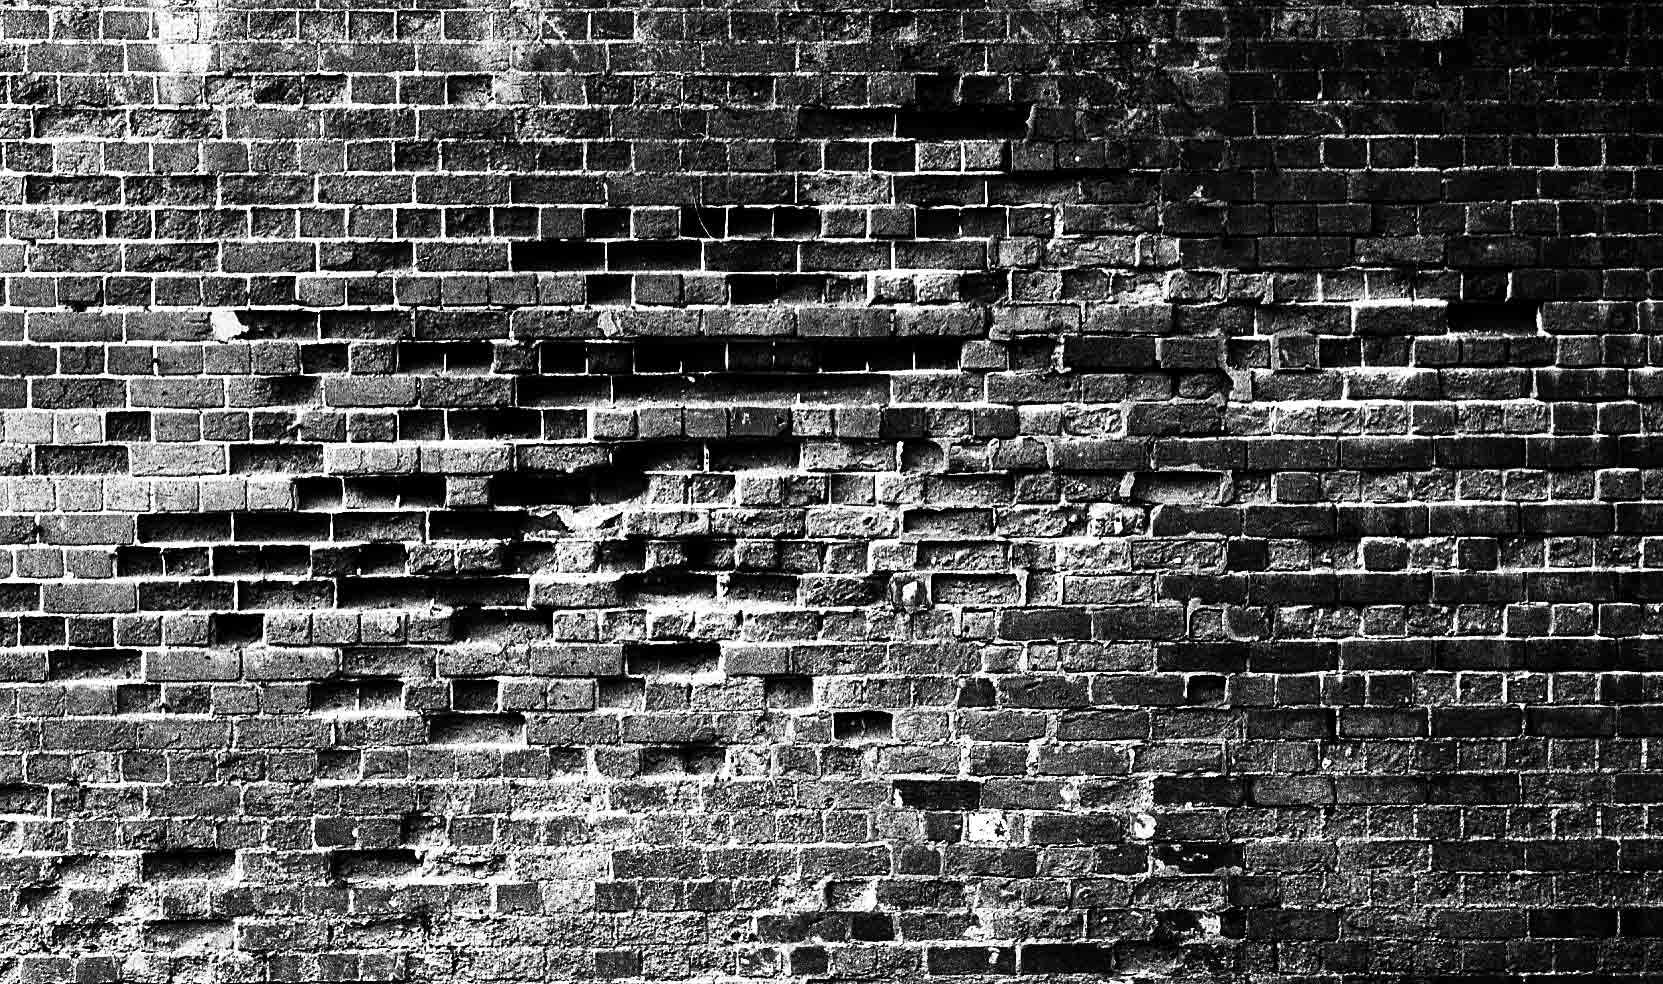 Brick wall yammerman 39 s blog for Black and white wallpaper for walls